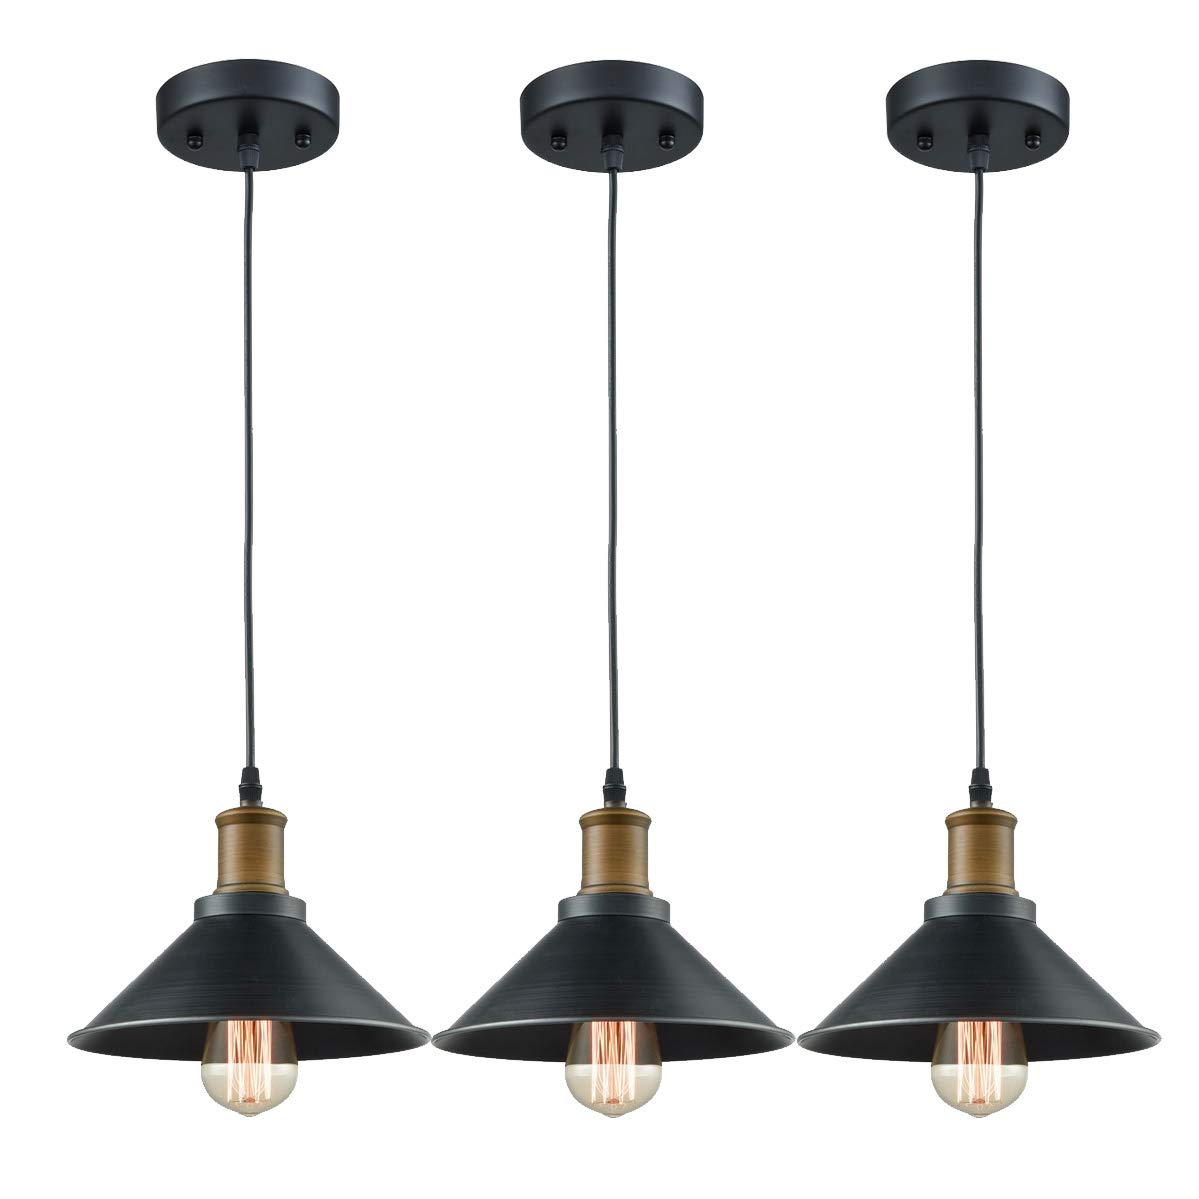 Industrial farmhouse pendant light set of 3.